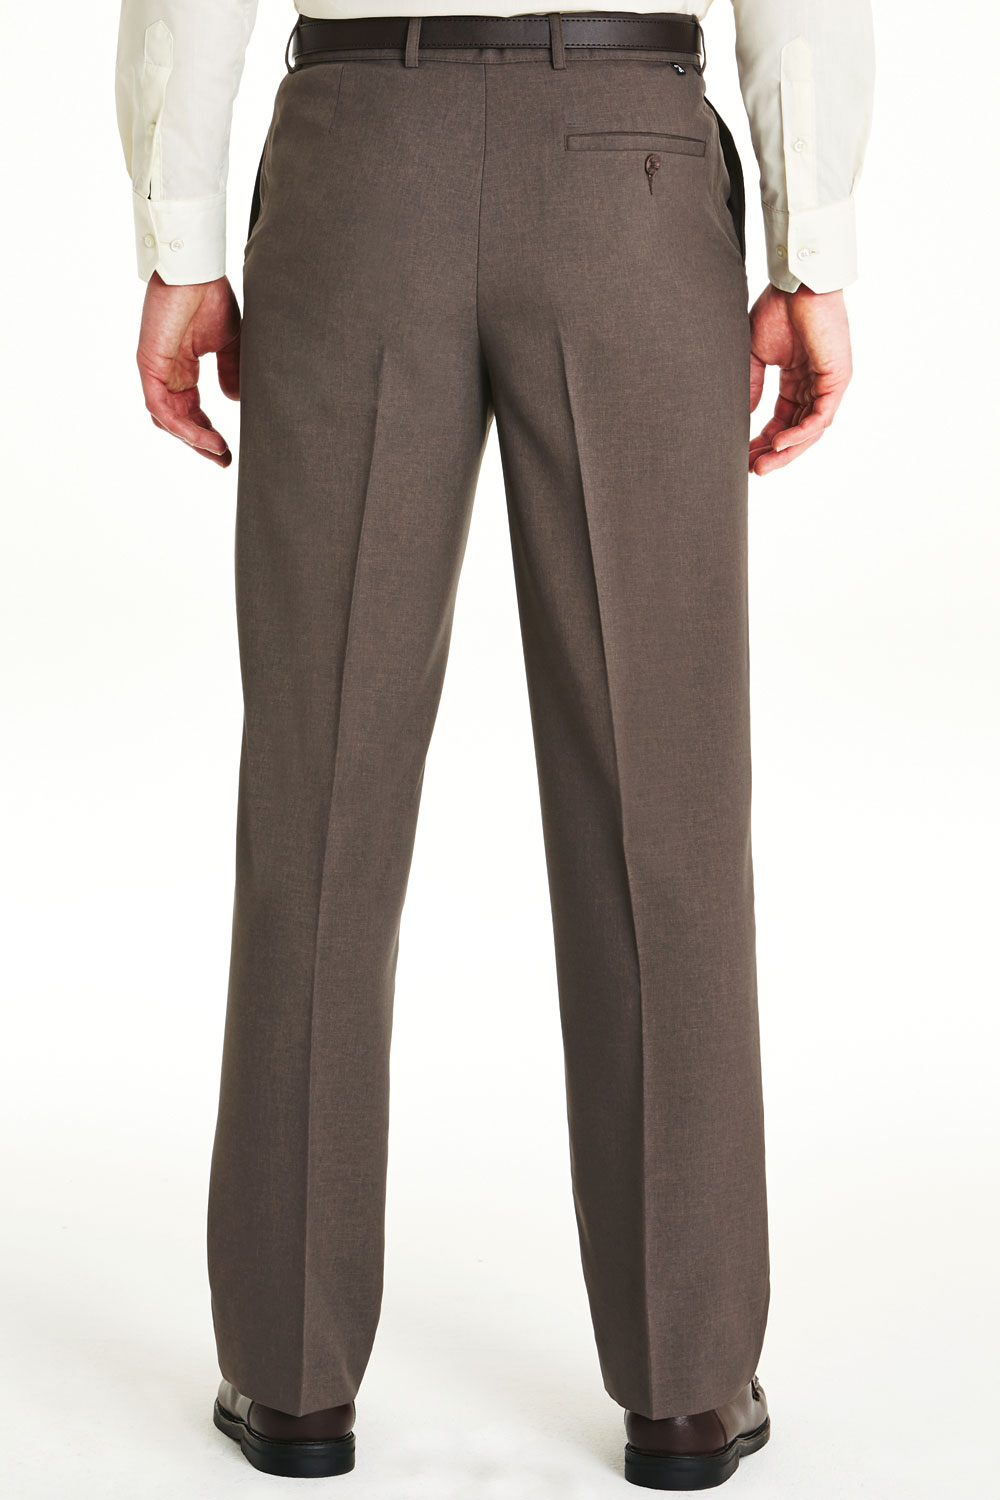 Mens-Farah-Slant-Pocket-Formal-Classic-Trouser-Pants thumbnail 7